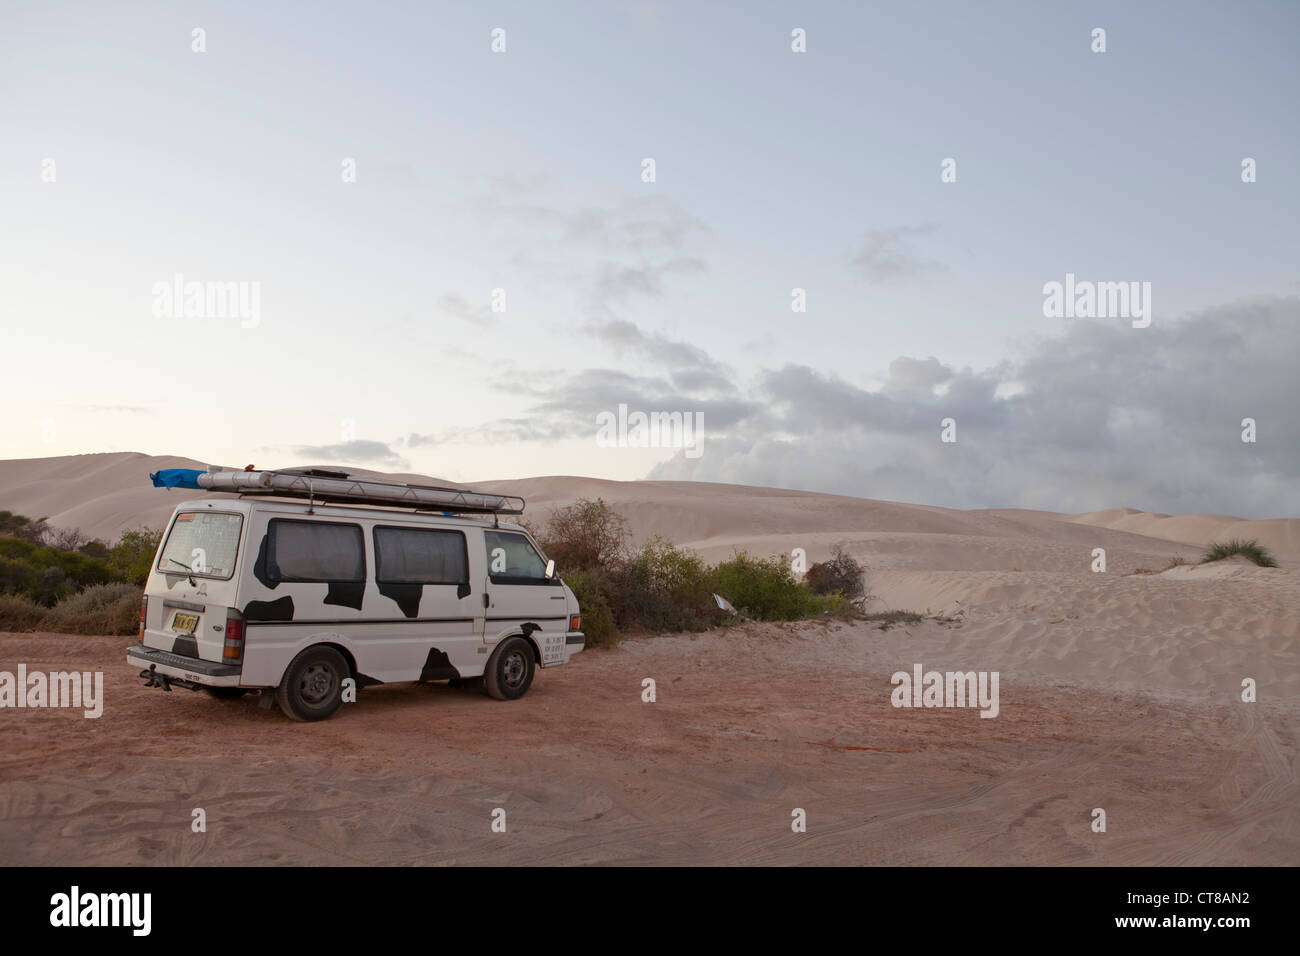 Campervan the morning after spending the night in a beach car park in Geraldton, Western Australia - Stock Image